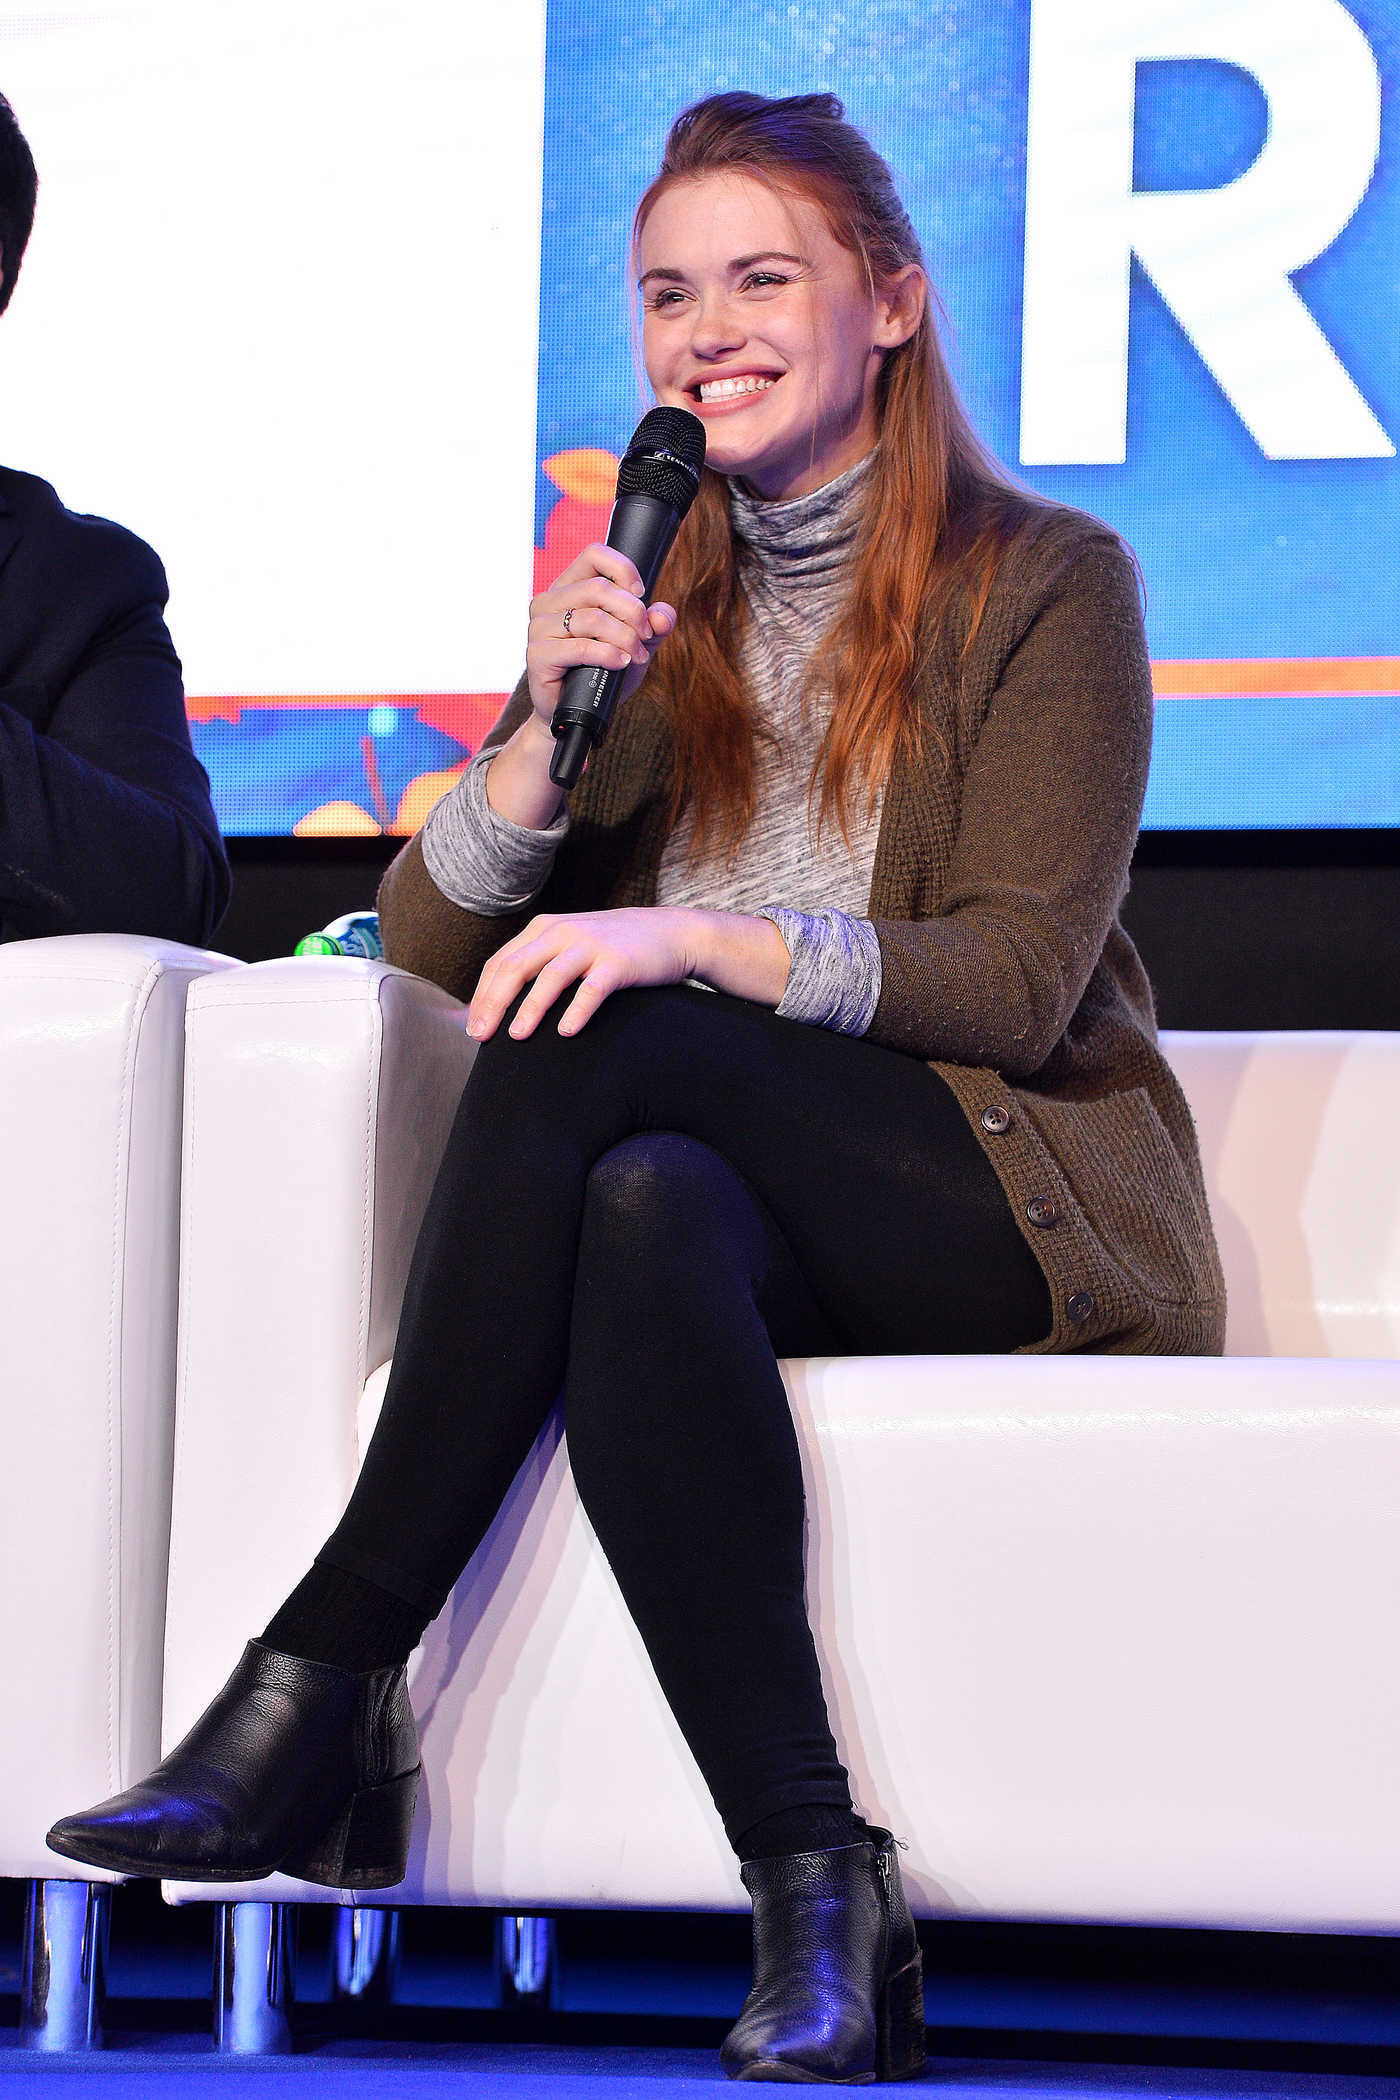 Holland Roden at Warsaw Comic Con at Ptak Warsaw Expo in Warsaw 11/25/2017